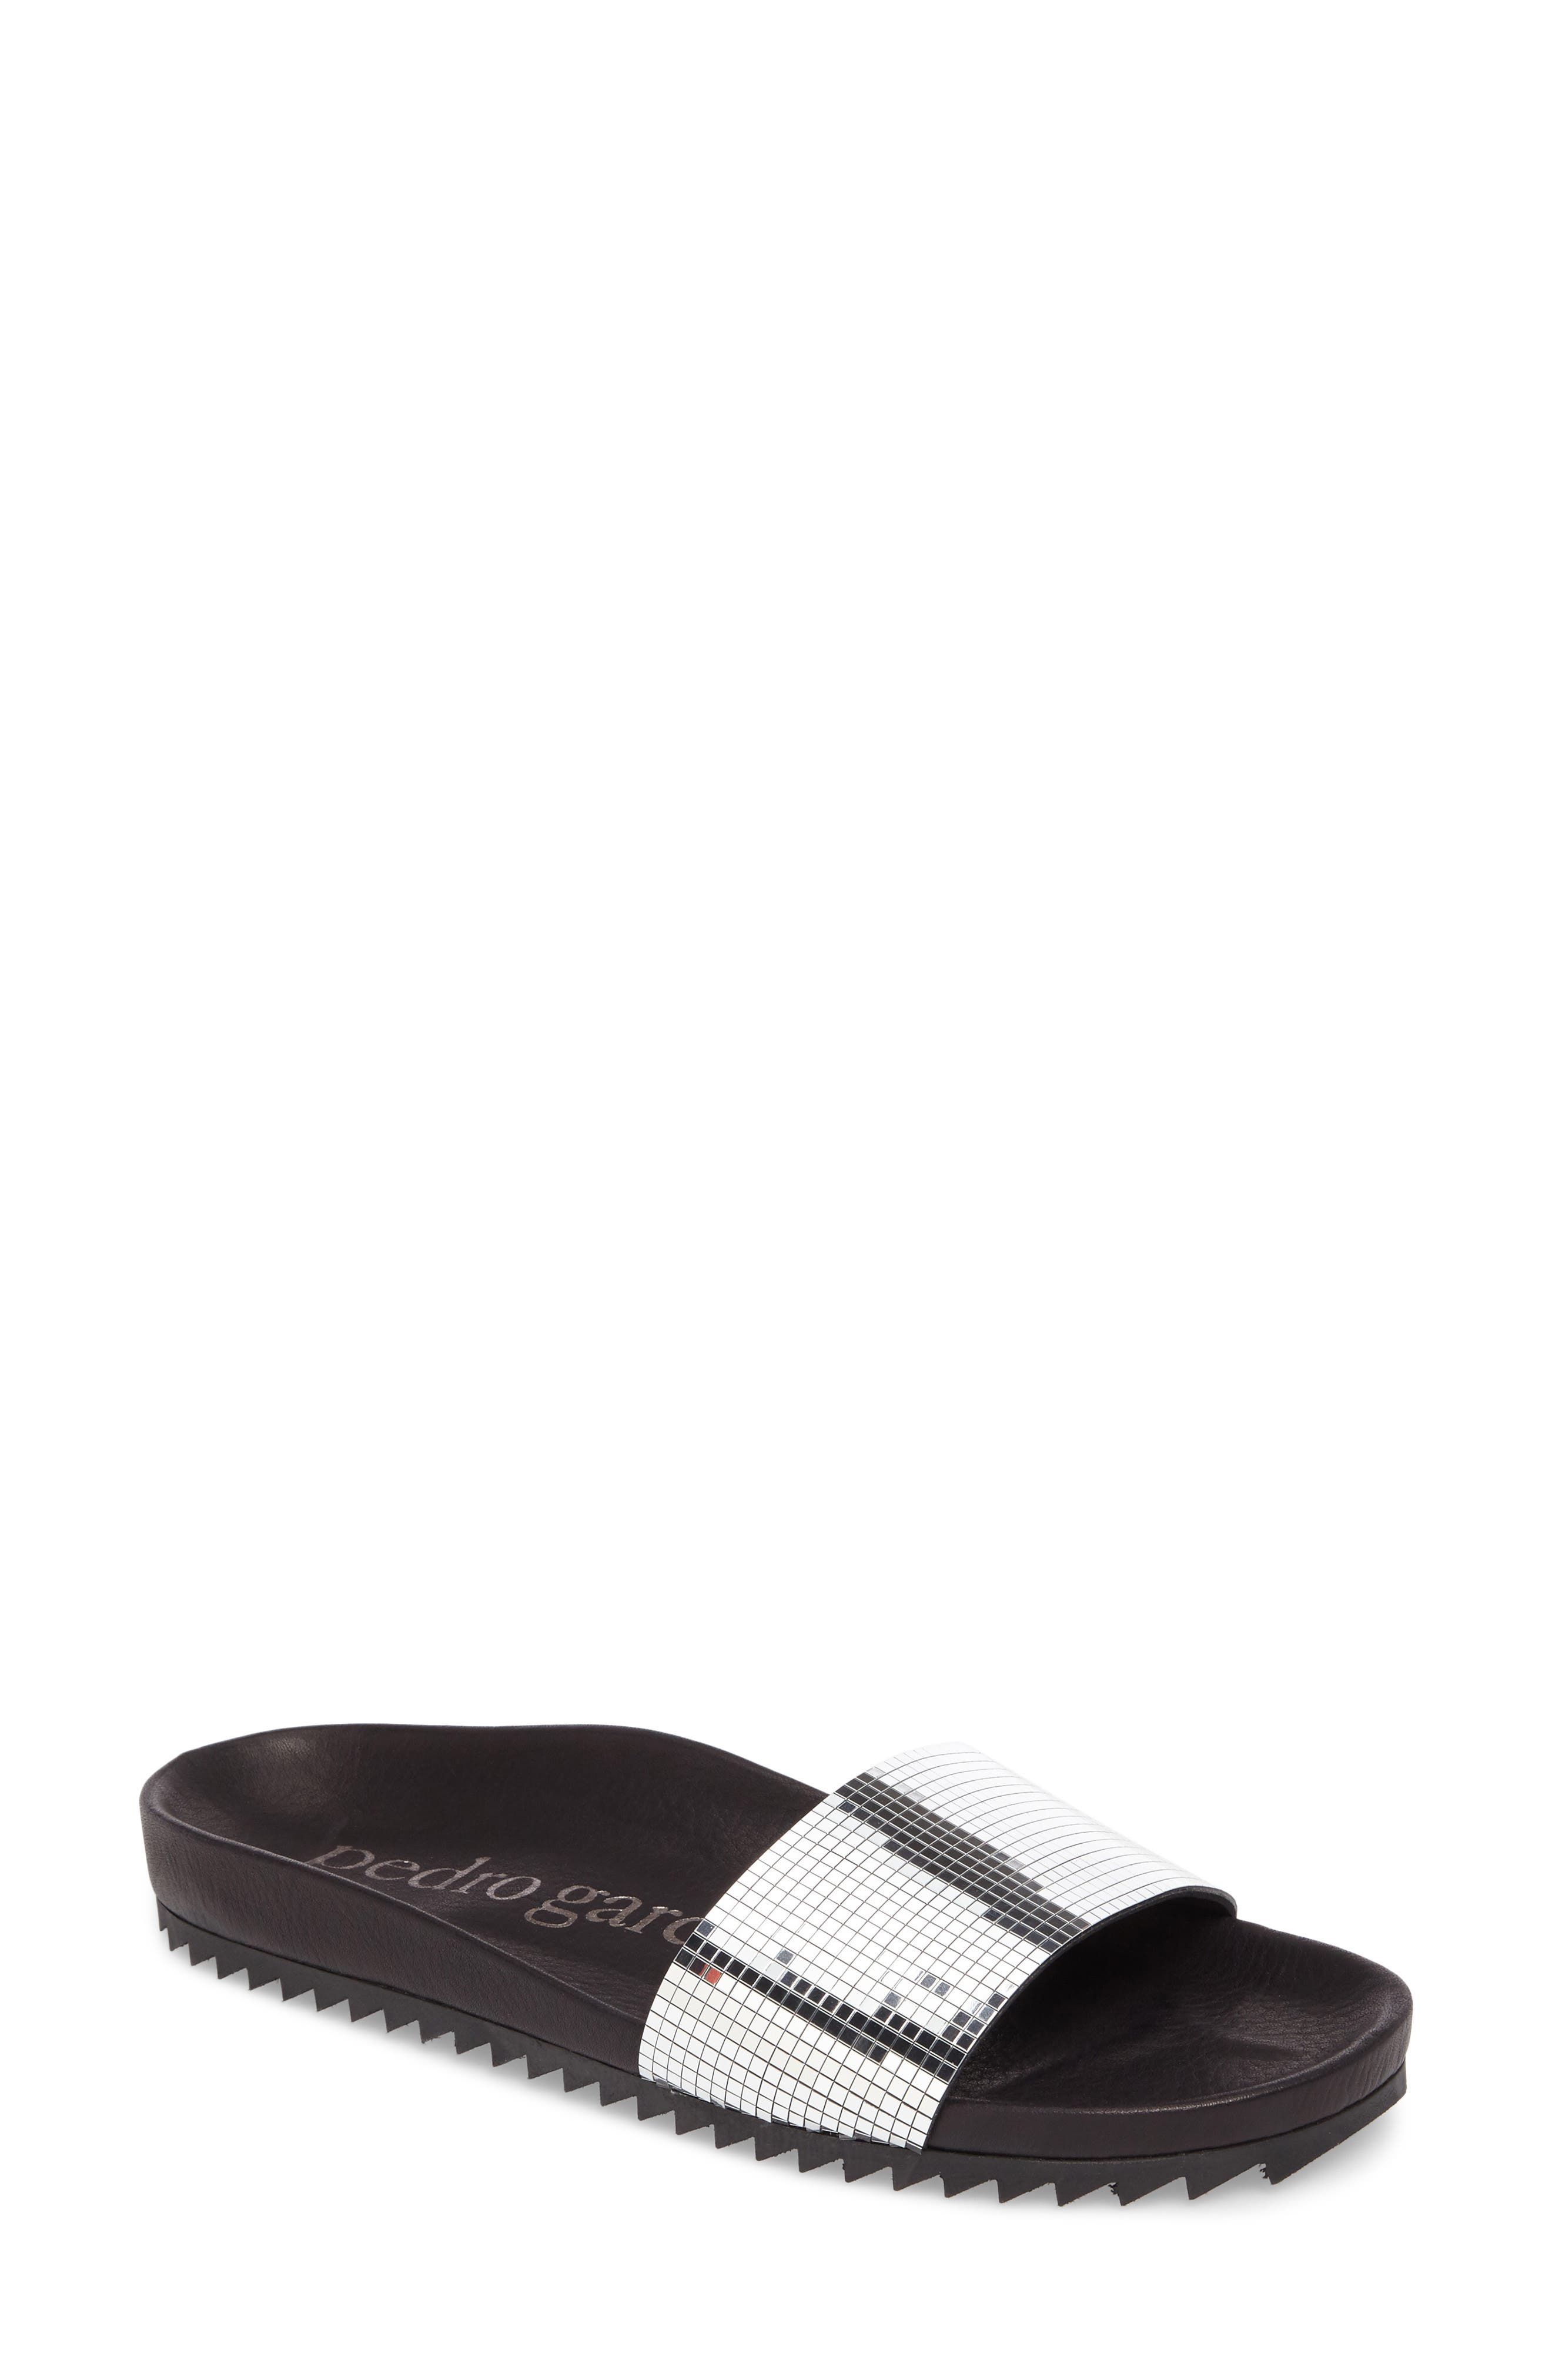 Alice Slide Sandal,                             Main thumbnail 1, color,                             040